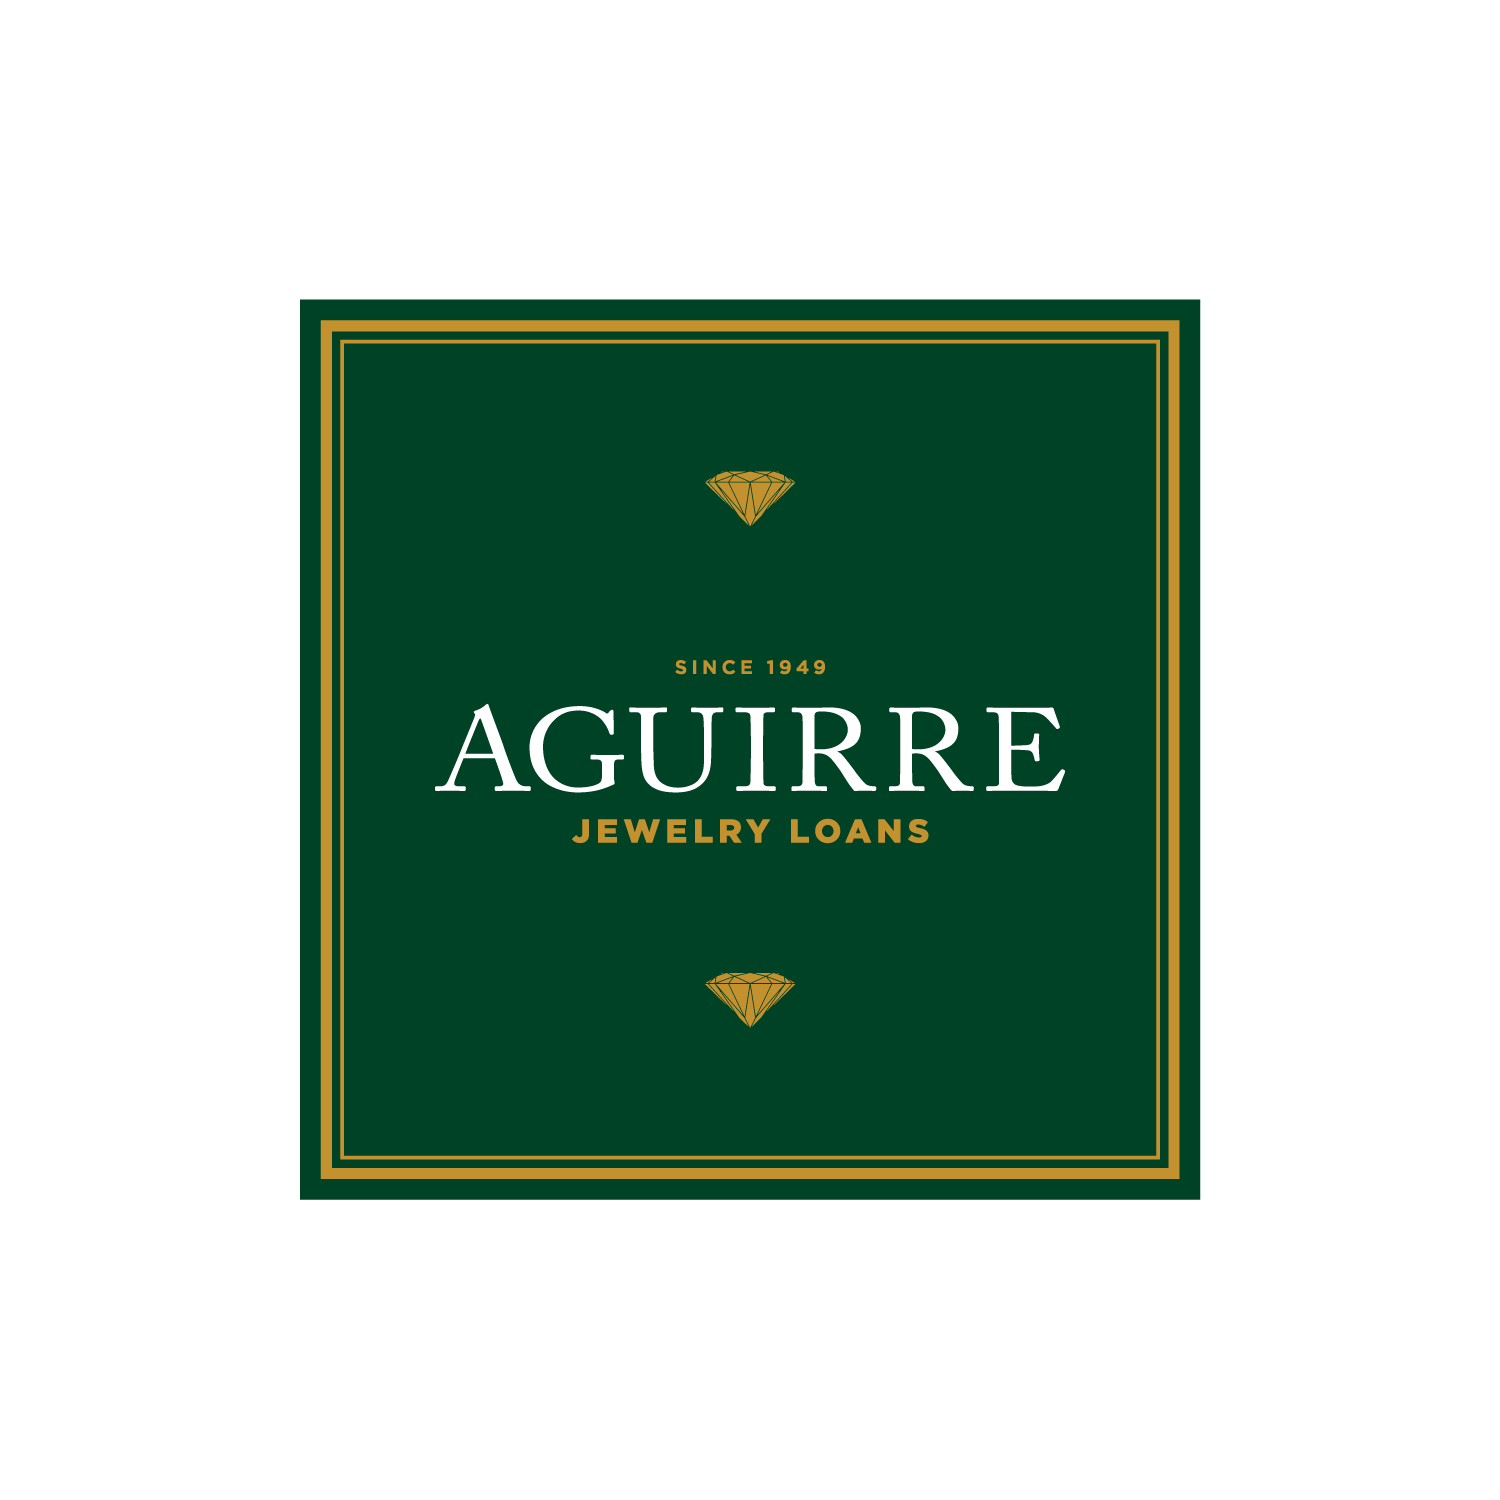 Aguirre Jewelry Loans